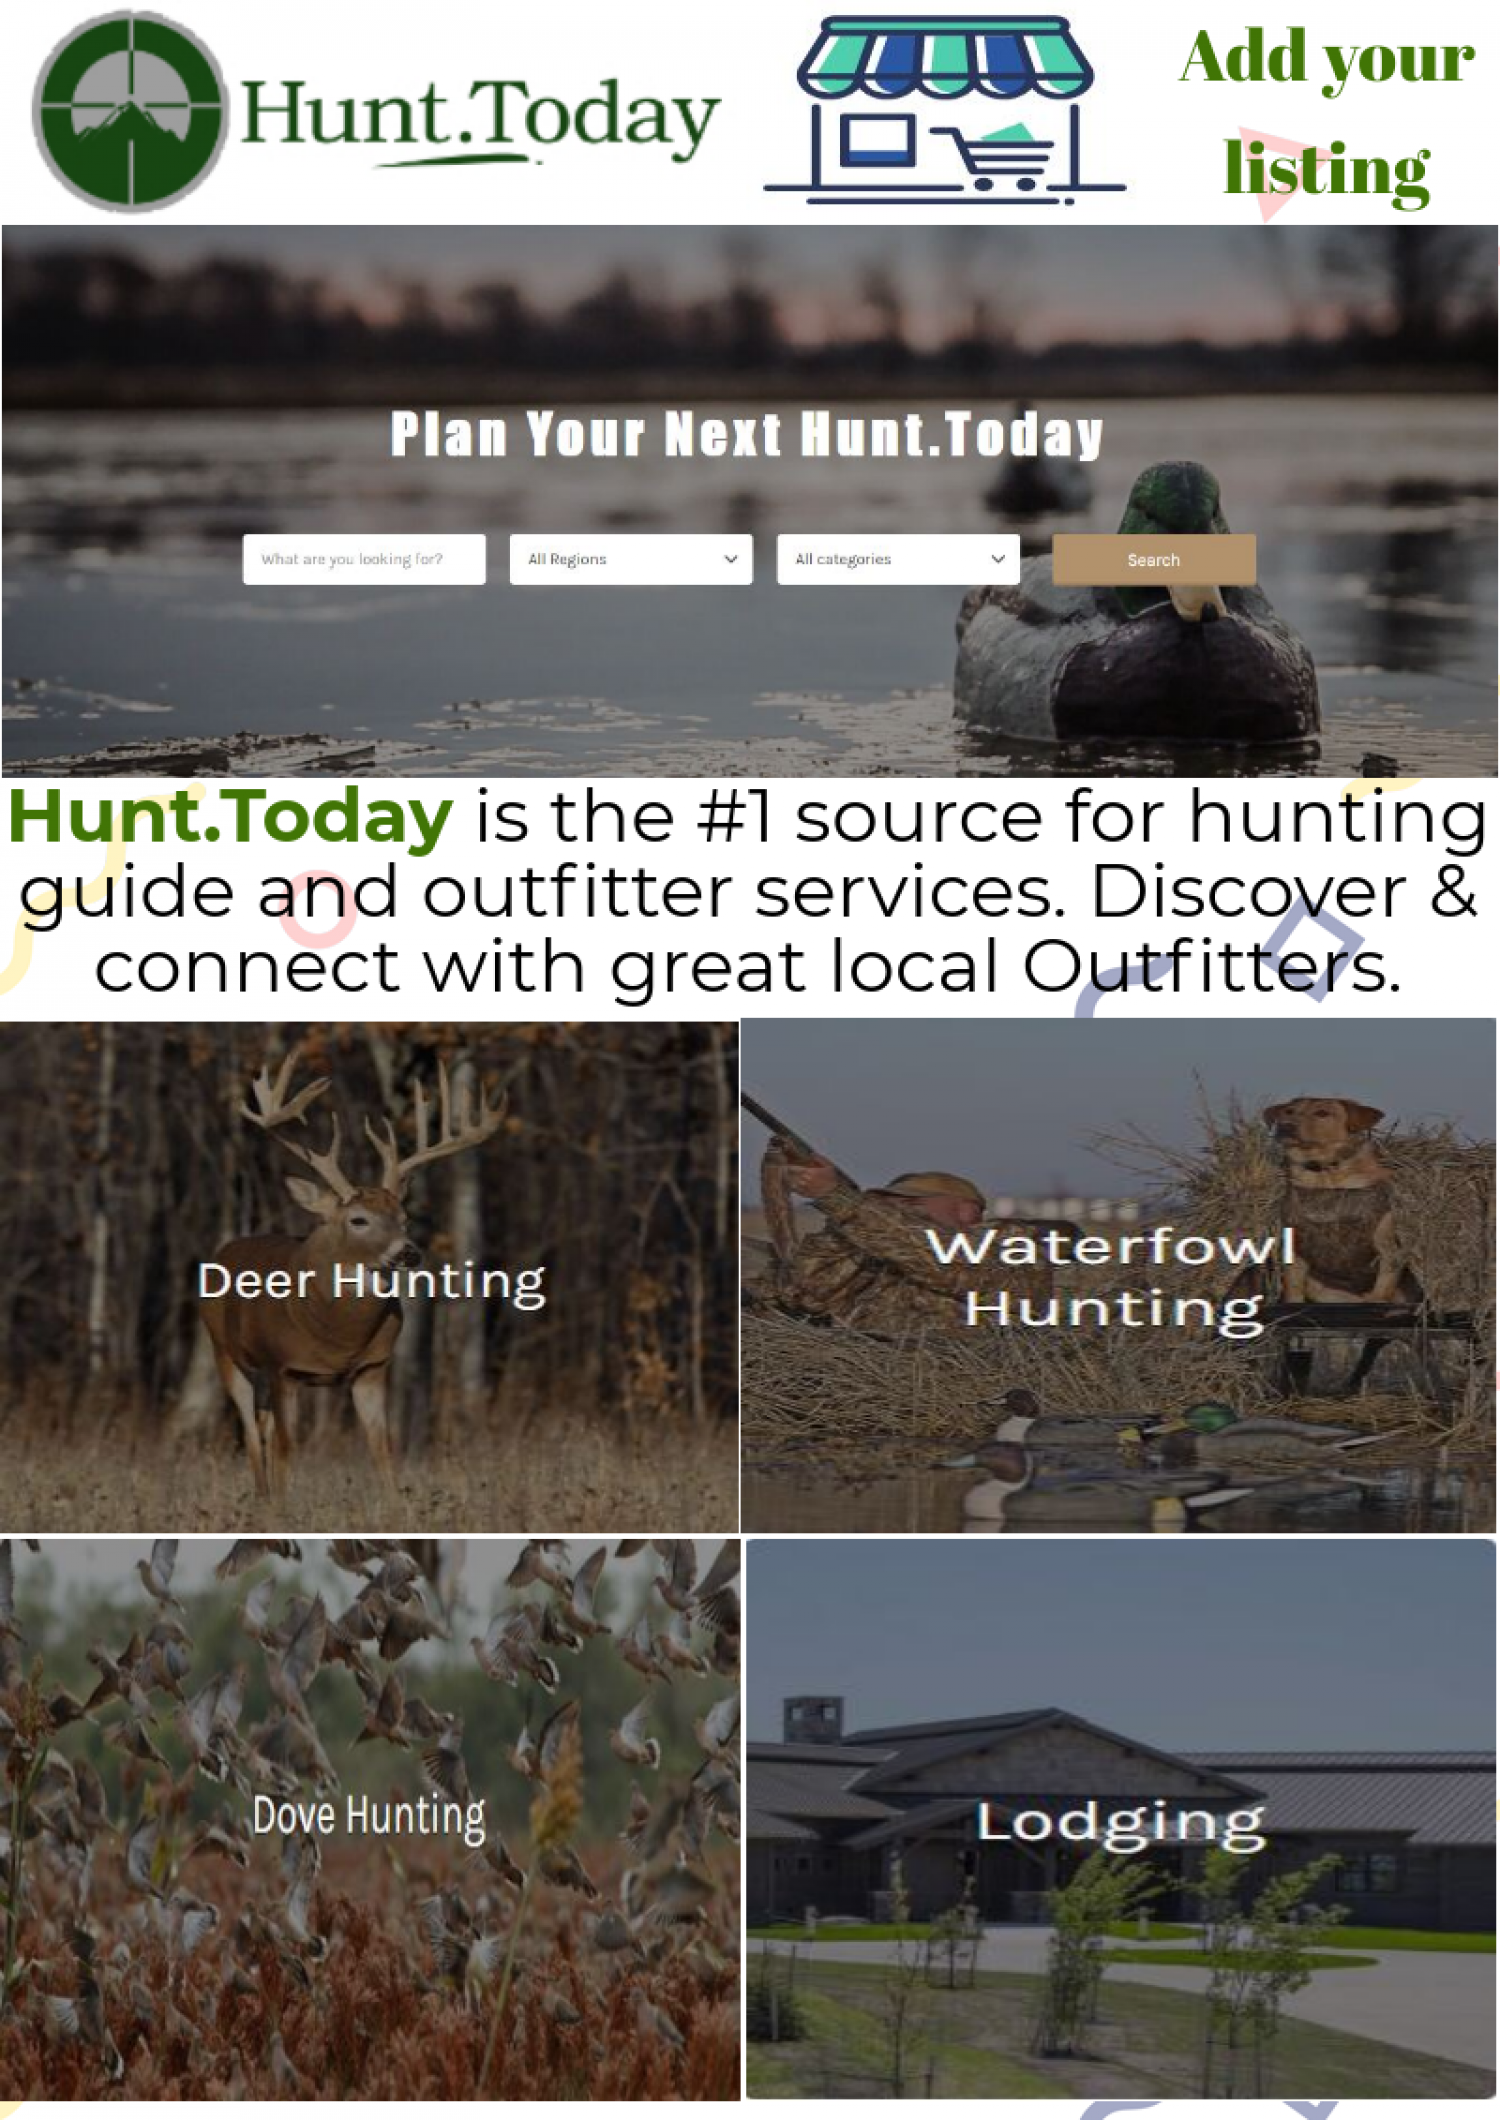 Hunting guide and outfitter services - Hunt.Today Infographic